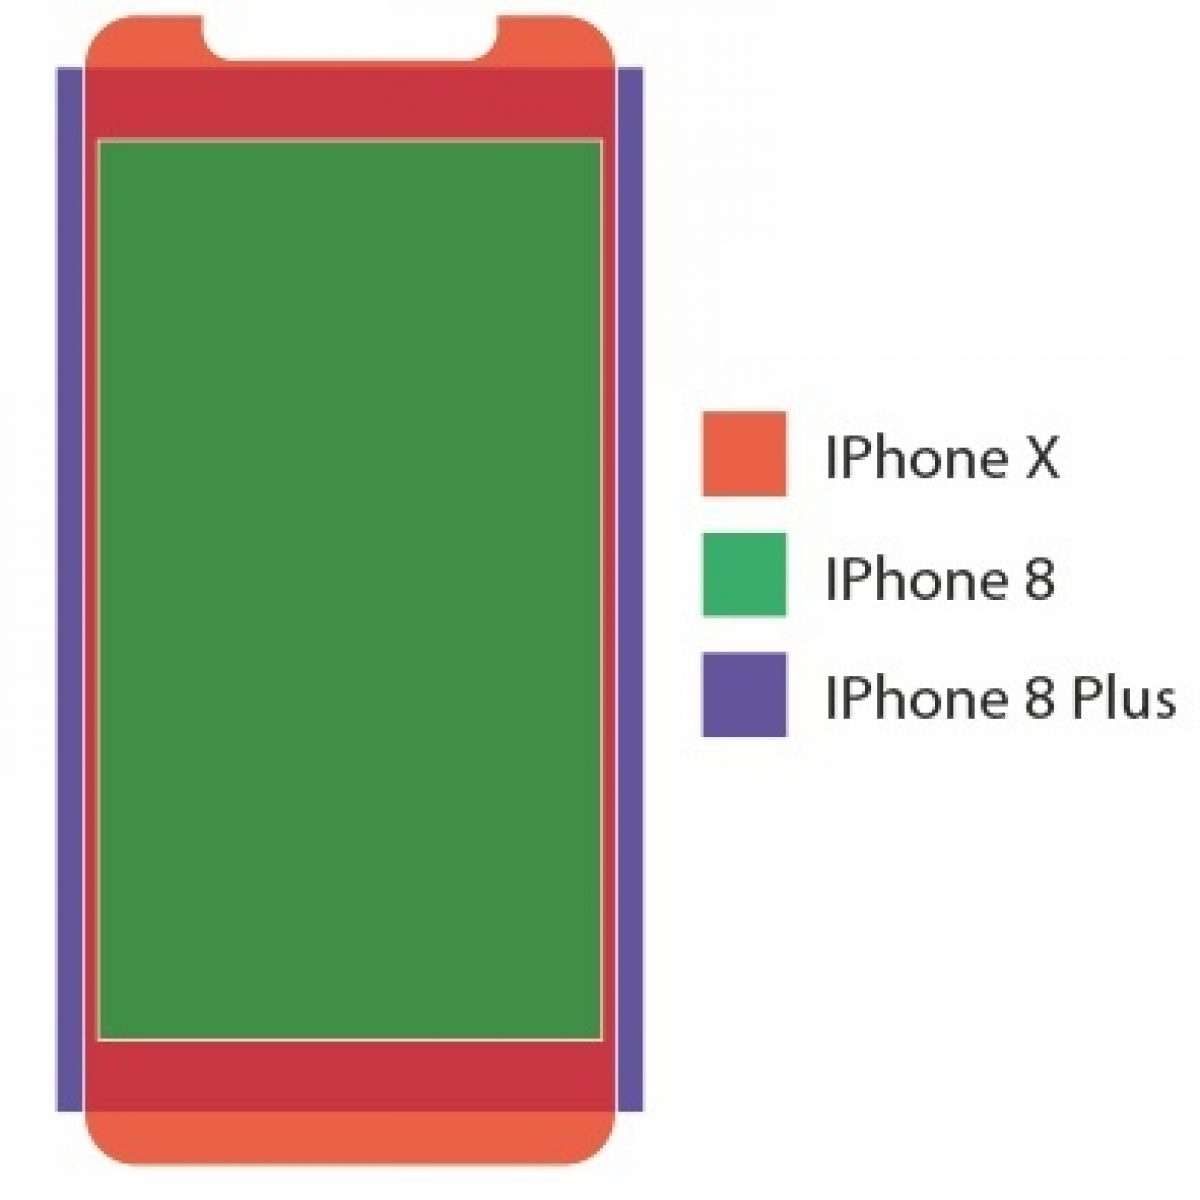 Iphone X Iphone 8 And Iphone 8 Plus Screen Comparison